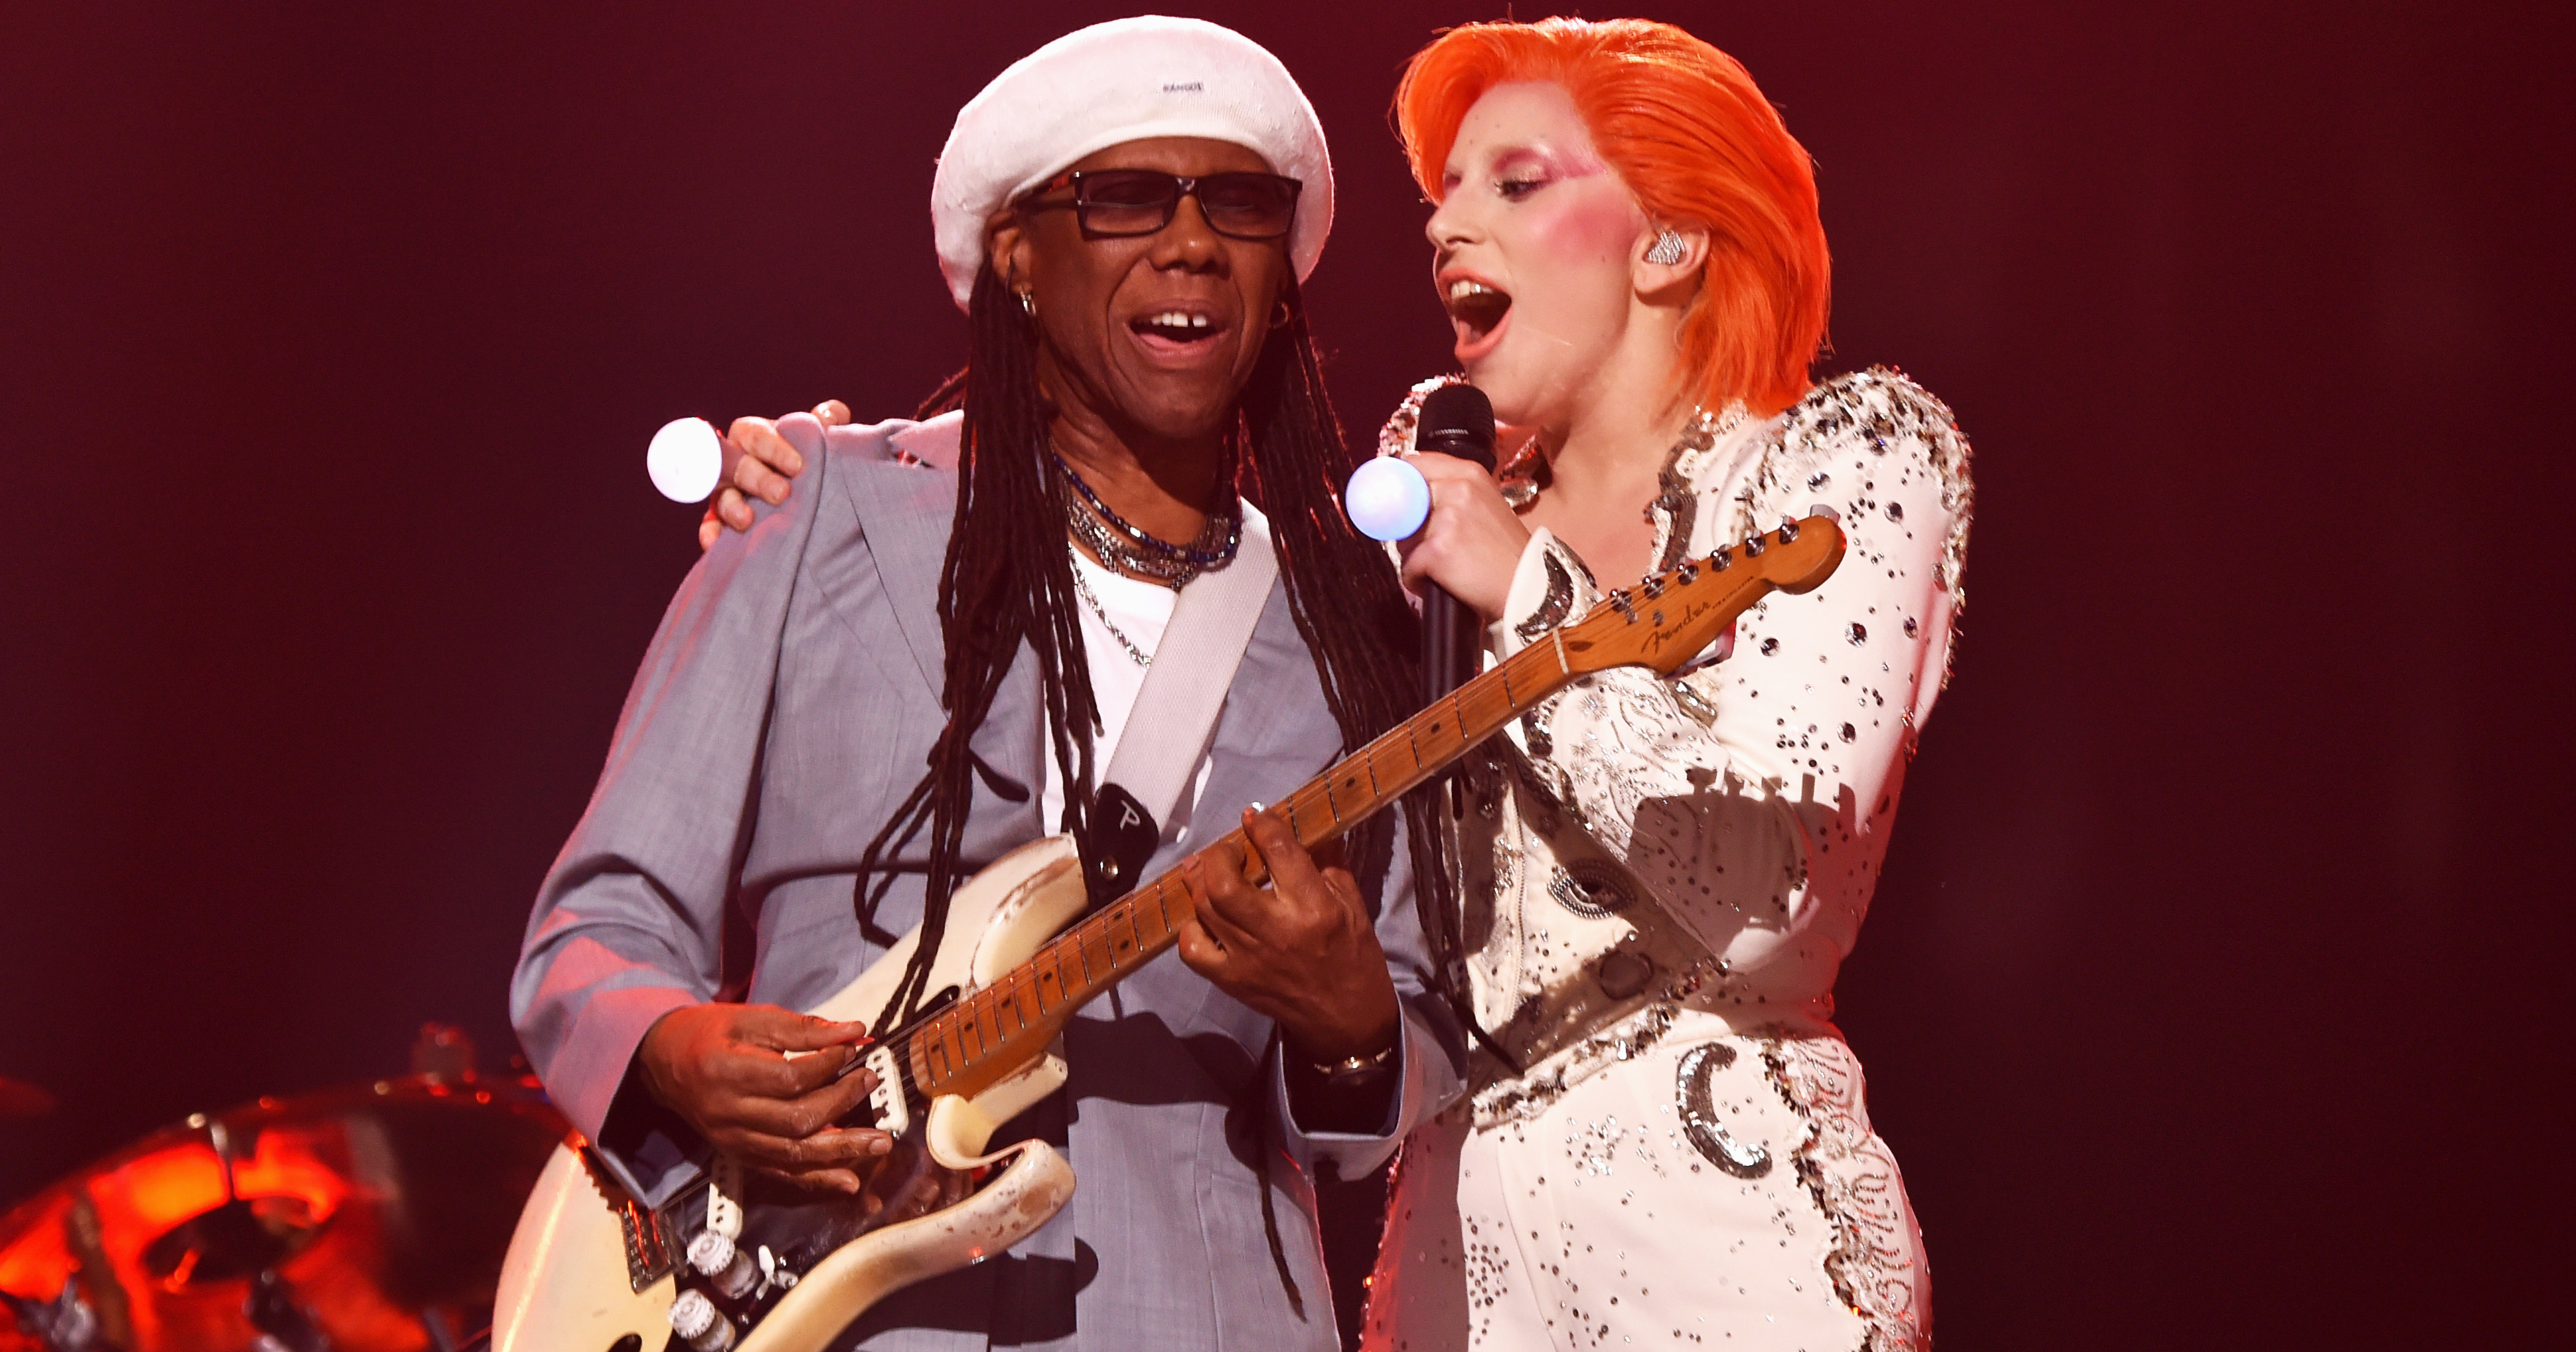 Nile Rodgers, left, and Lady Gaga, right, perform during the 58th GRAMMY Awards on Feb. 15, 2016 in Los Angeles.